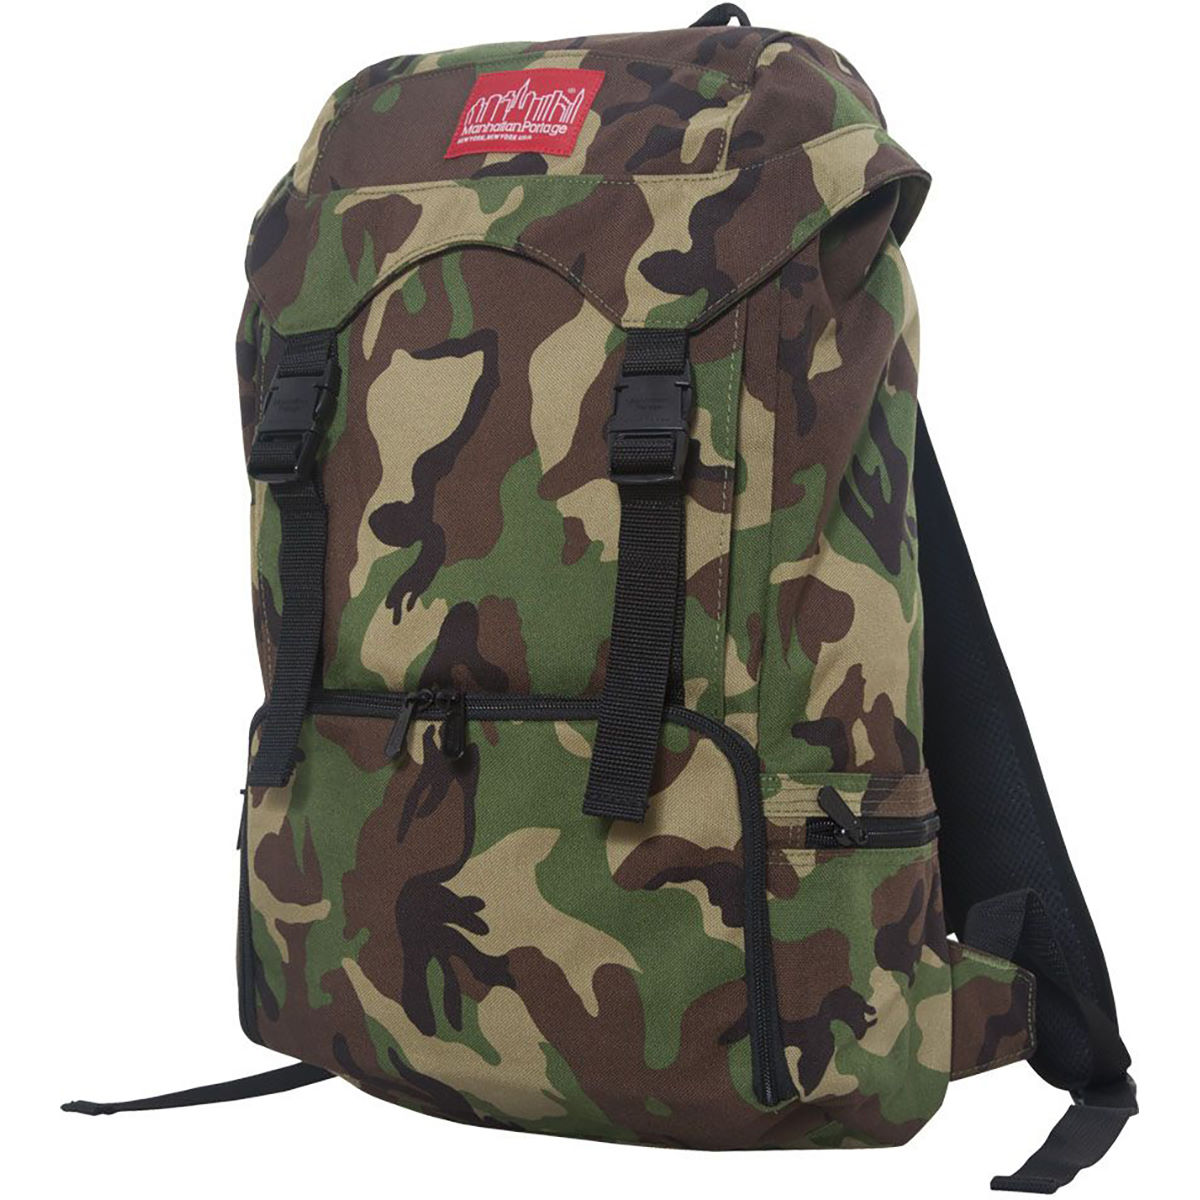 Manhattan Portage Hiker Backpack 3 - Mochilas